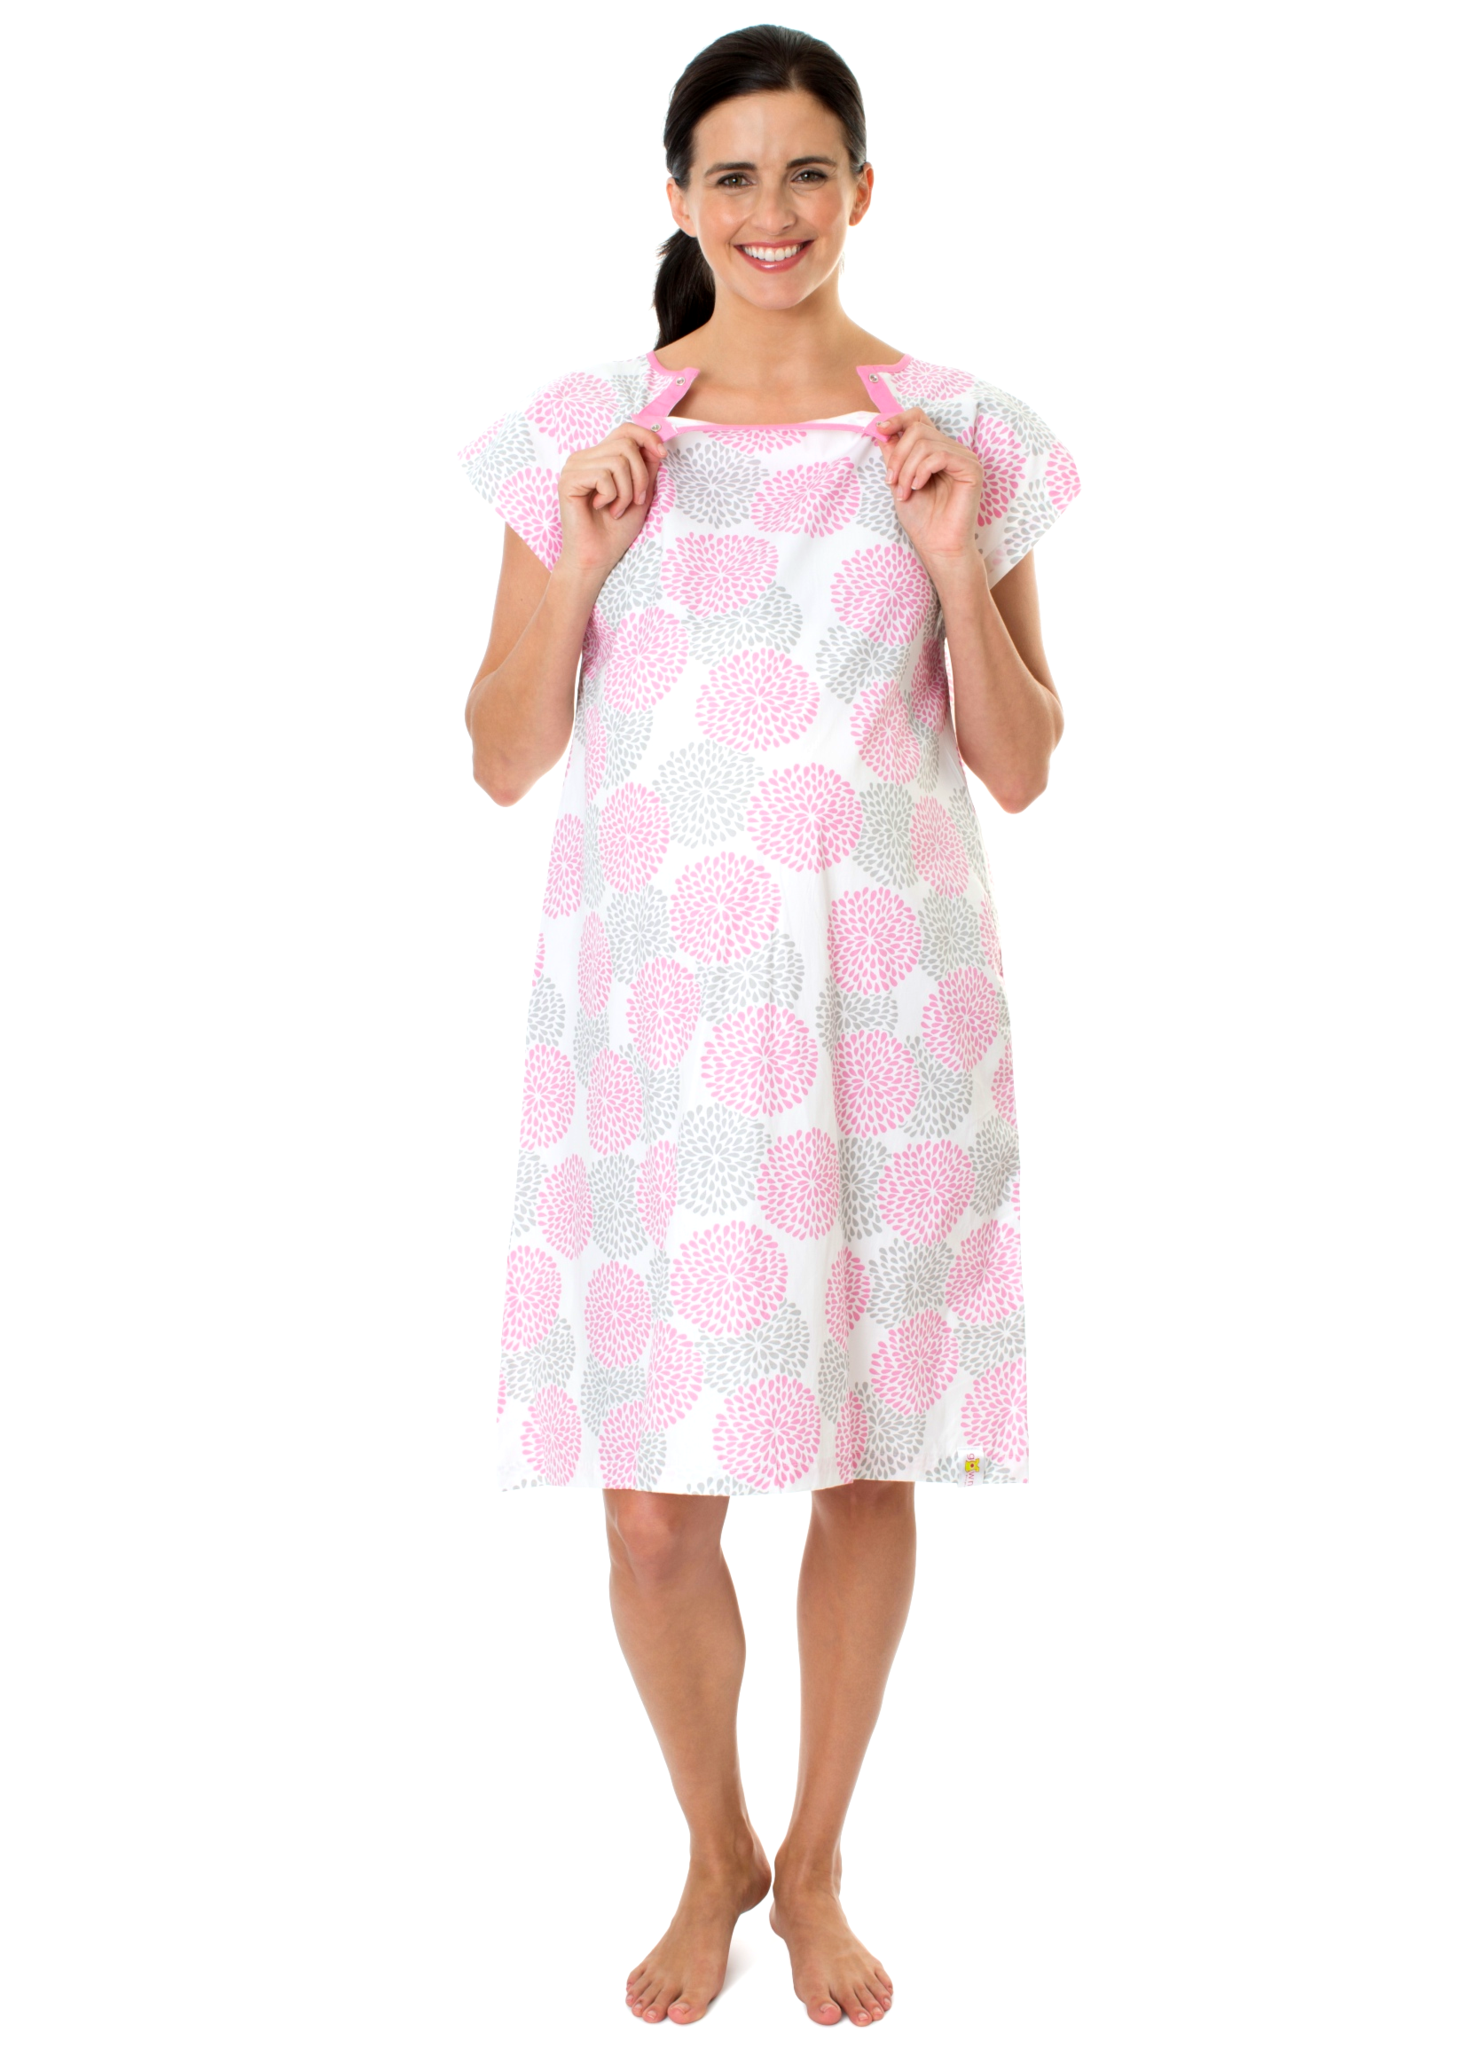 Lilly Gownie Maternity Delivery Labor Hospital Birthing Gown ...